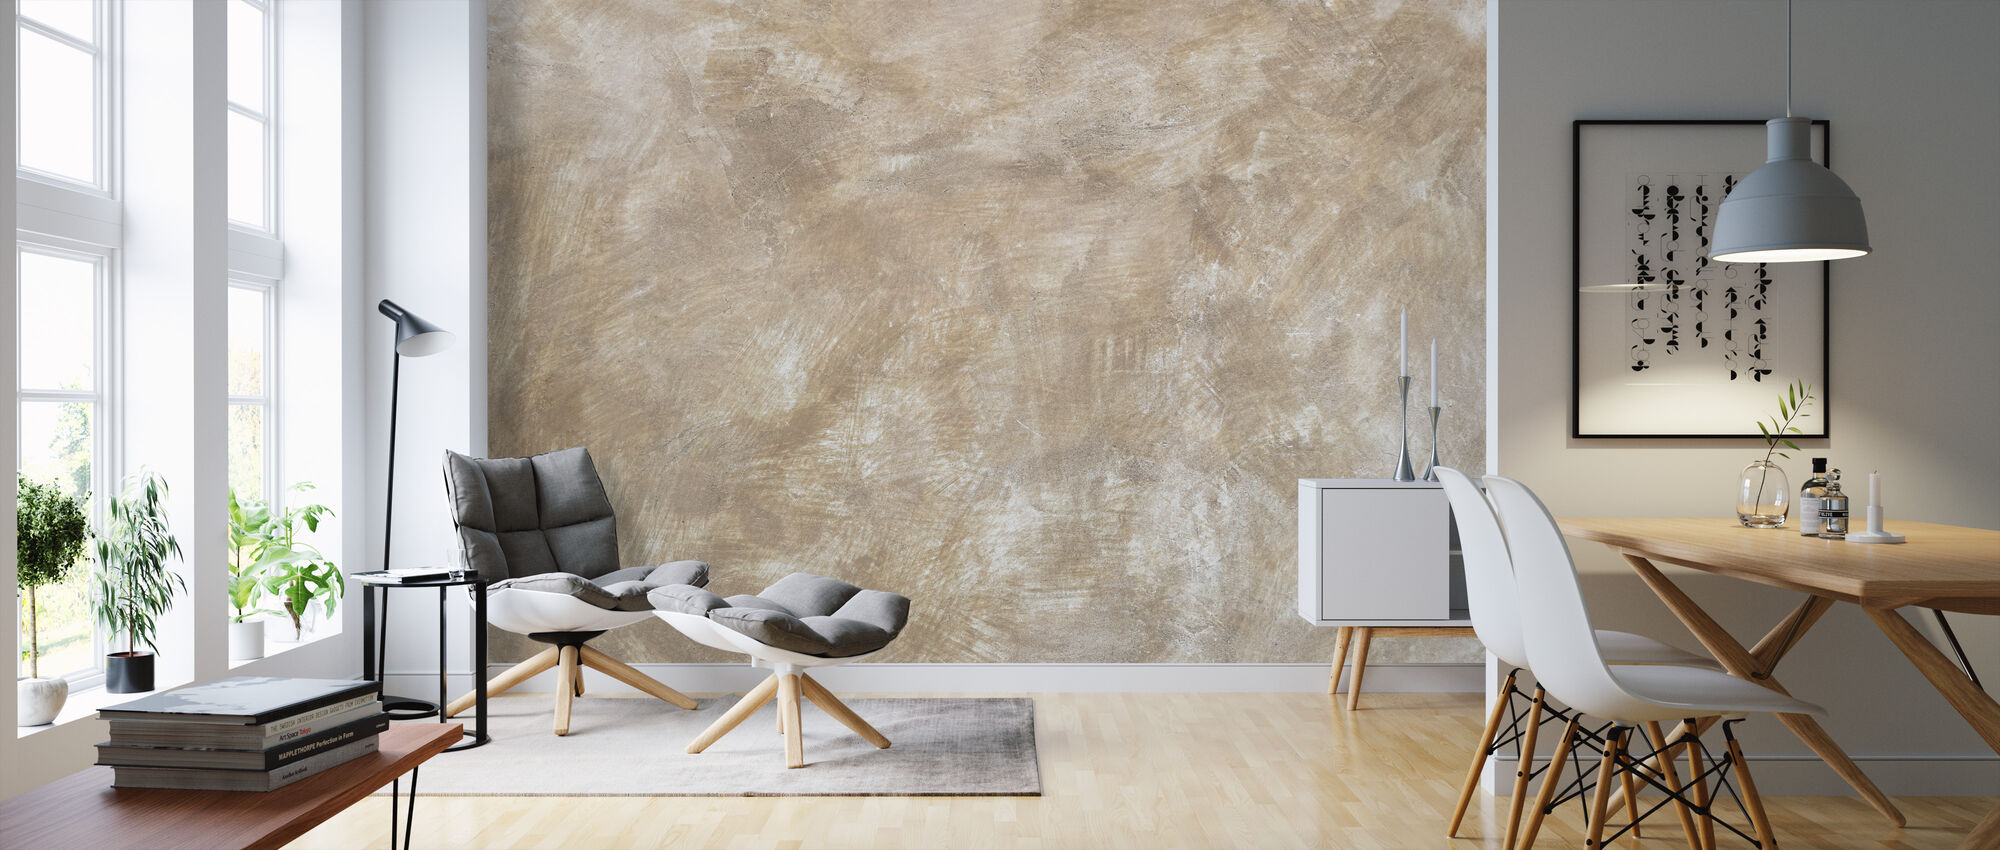 Brushed Wall - Wallpaper - Living Room